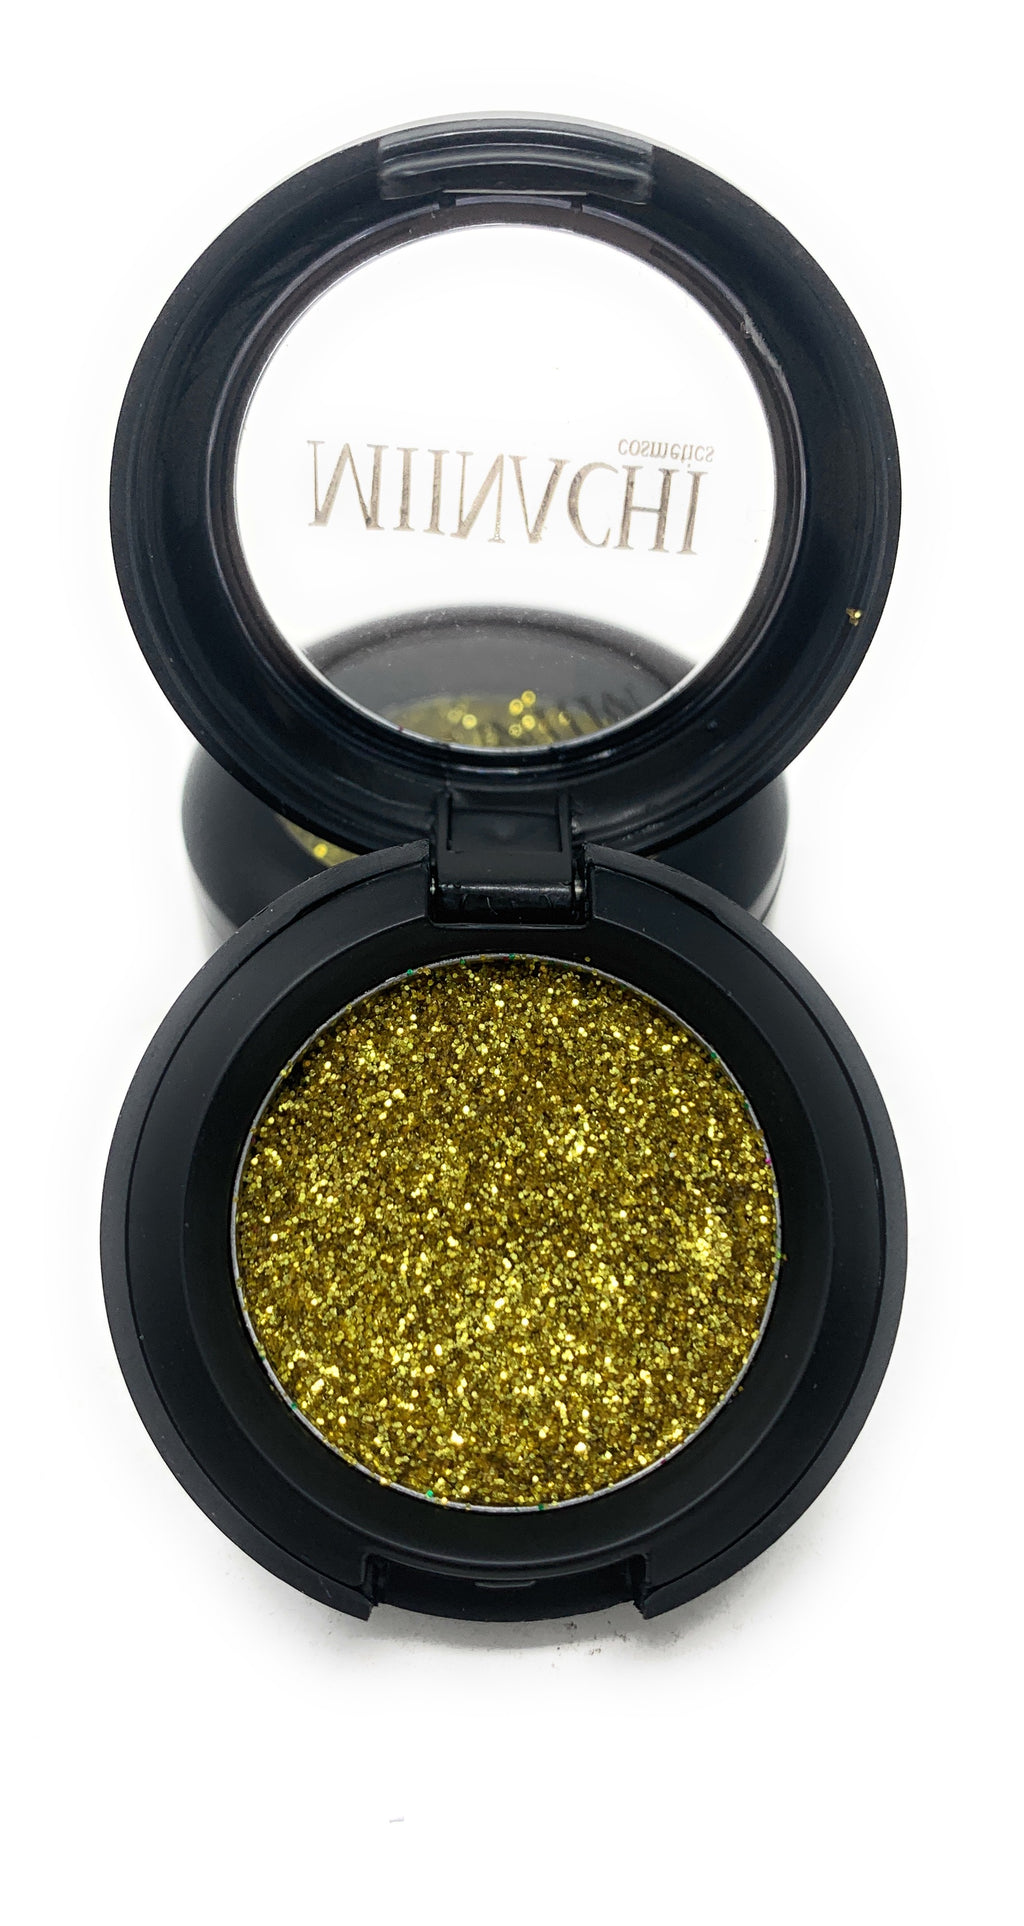 Single Pressed Glitter in the shade Desert Dusk, No Glue Needed, In Compact, Pigmented, No Fall Out, Glitter, Cosmetic Grade Glitter